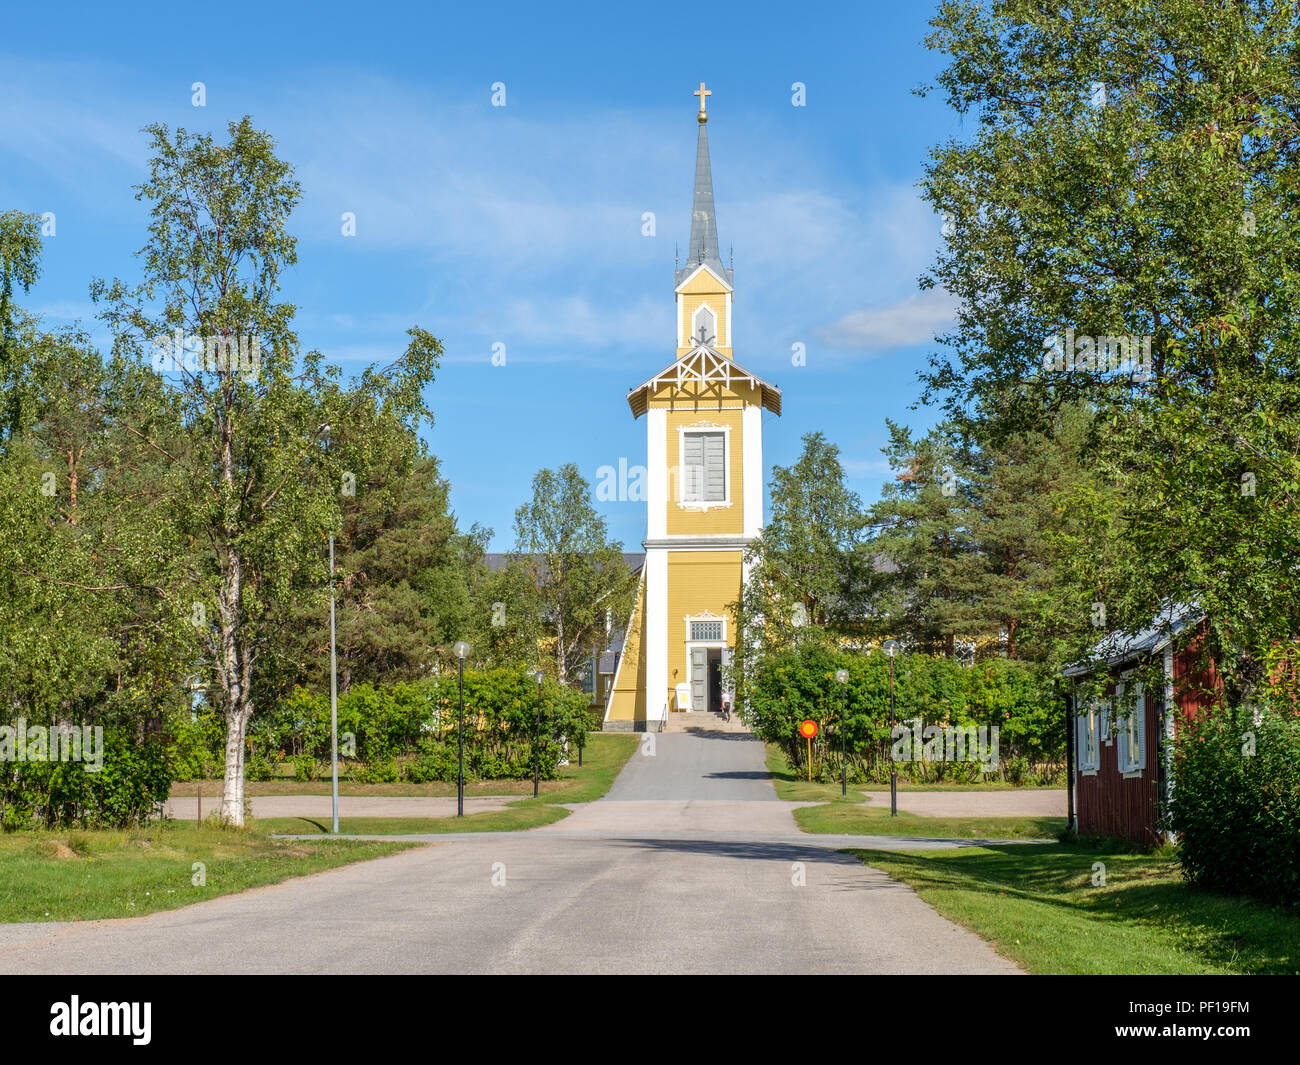 Pajala church in northern Sweden. The church was built in Kengis 1797 and moved to Pajala during 1869-71. - Stock Image